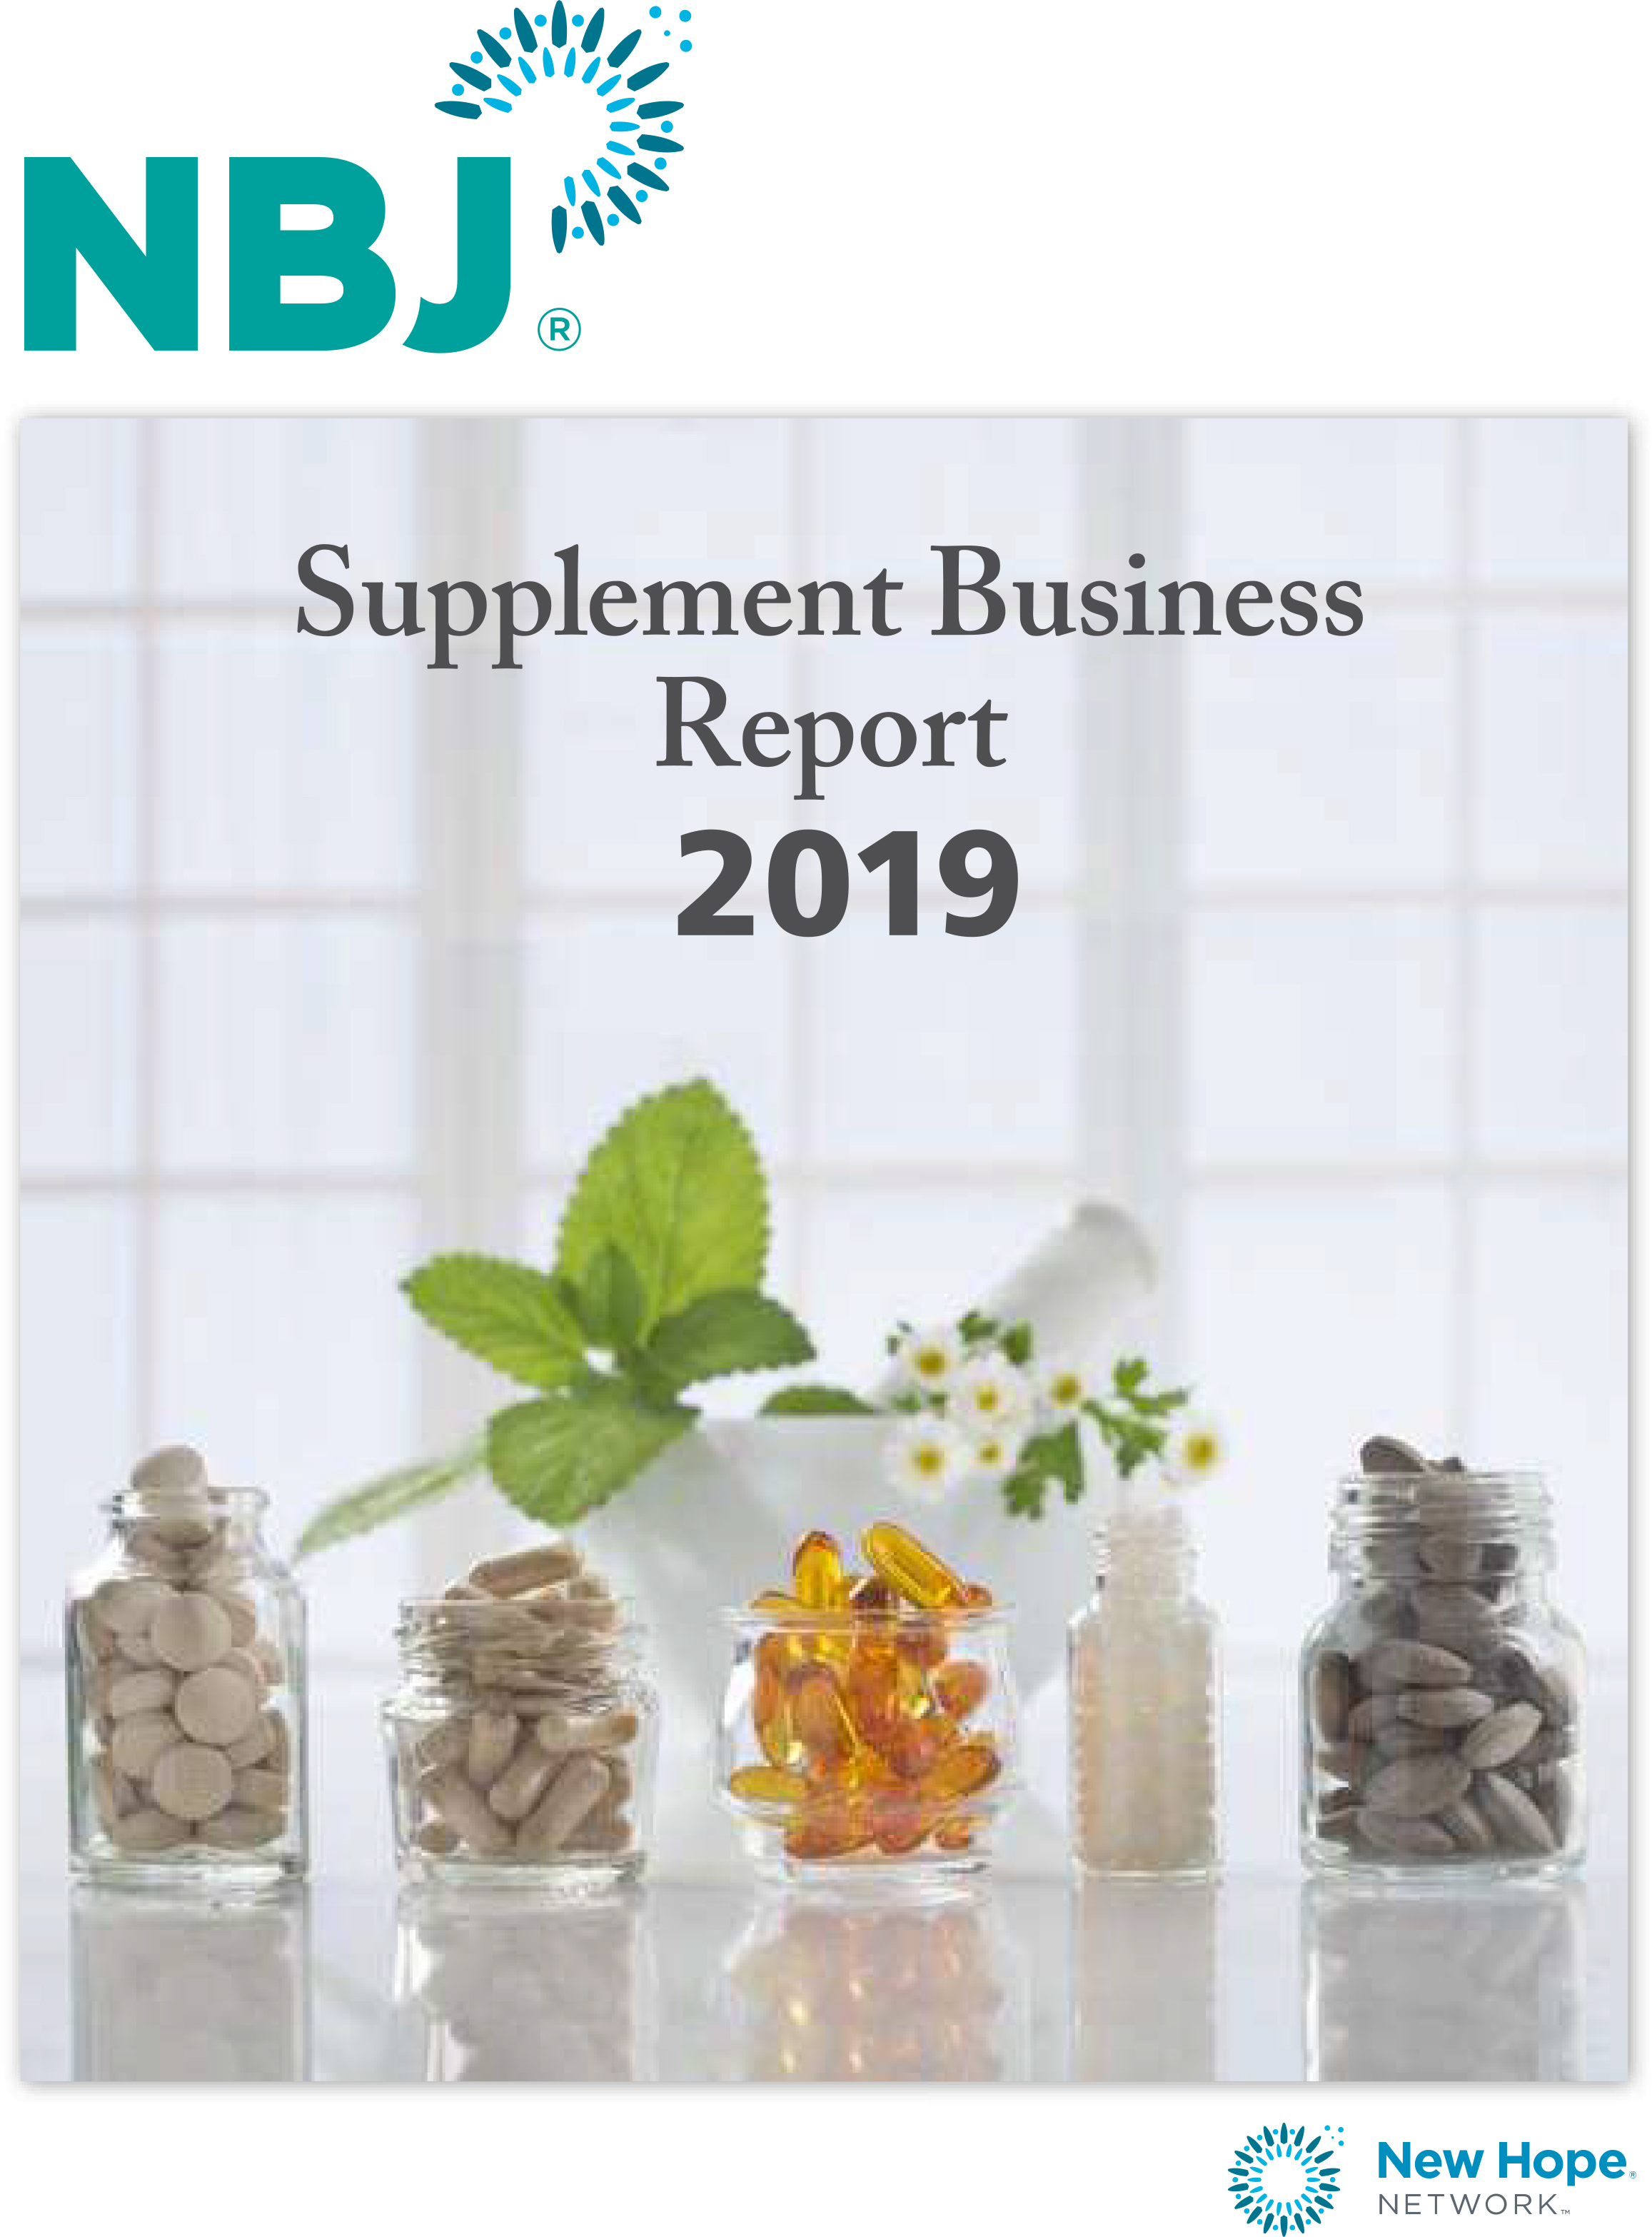 NBJ Supplement Business Report cover